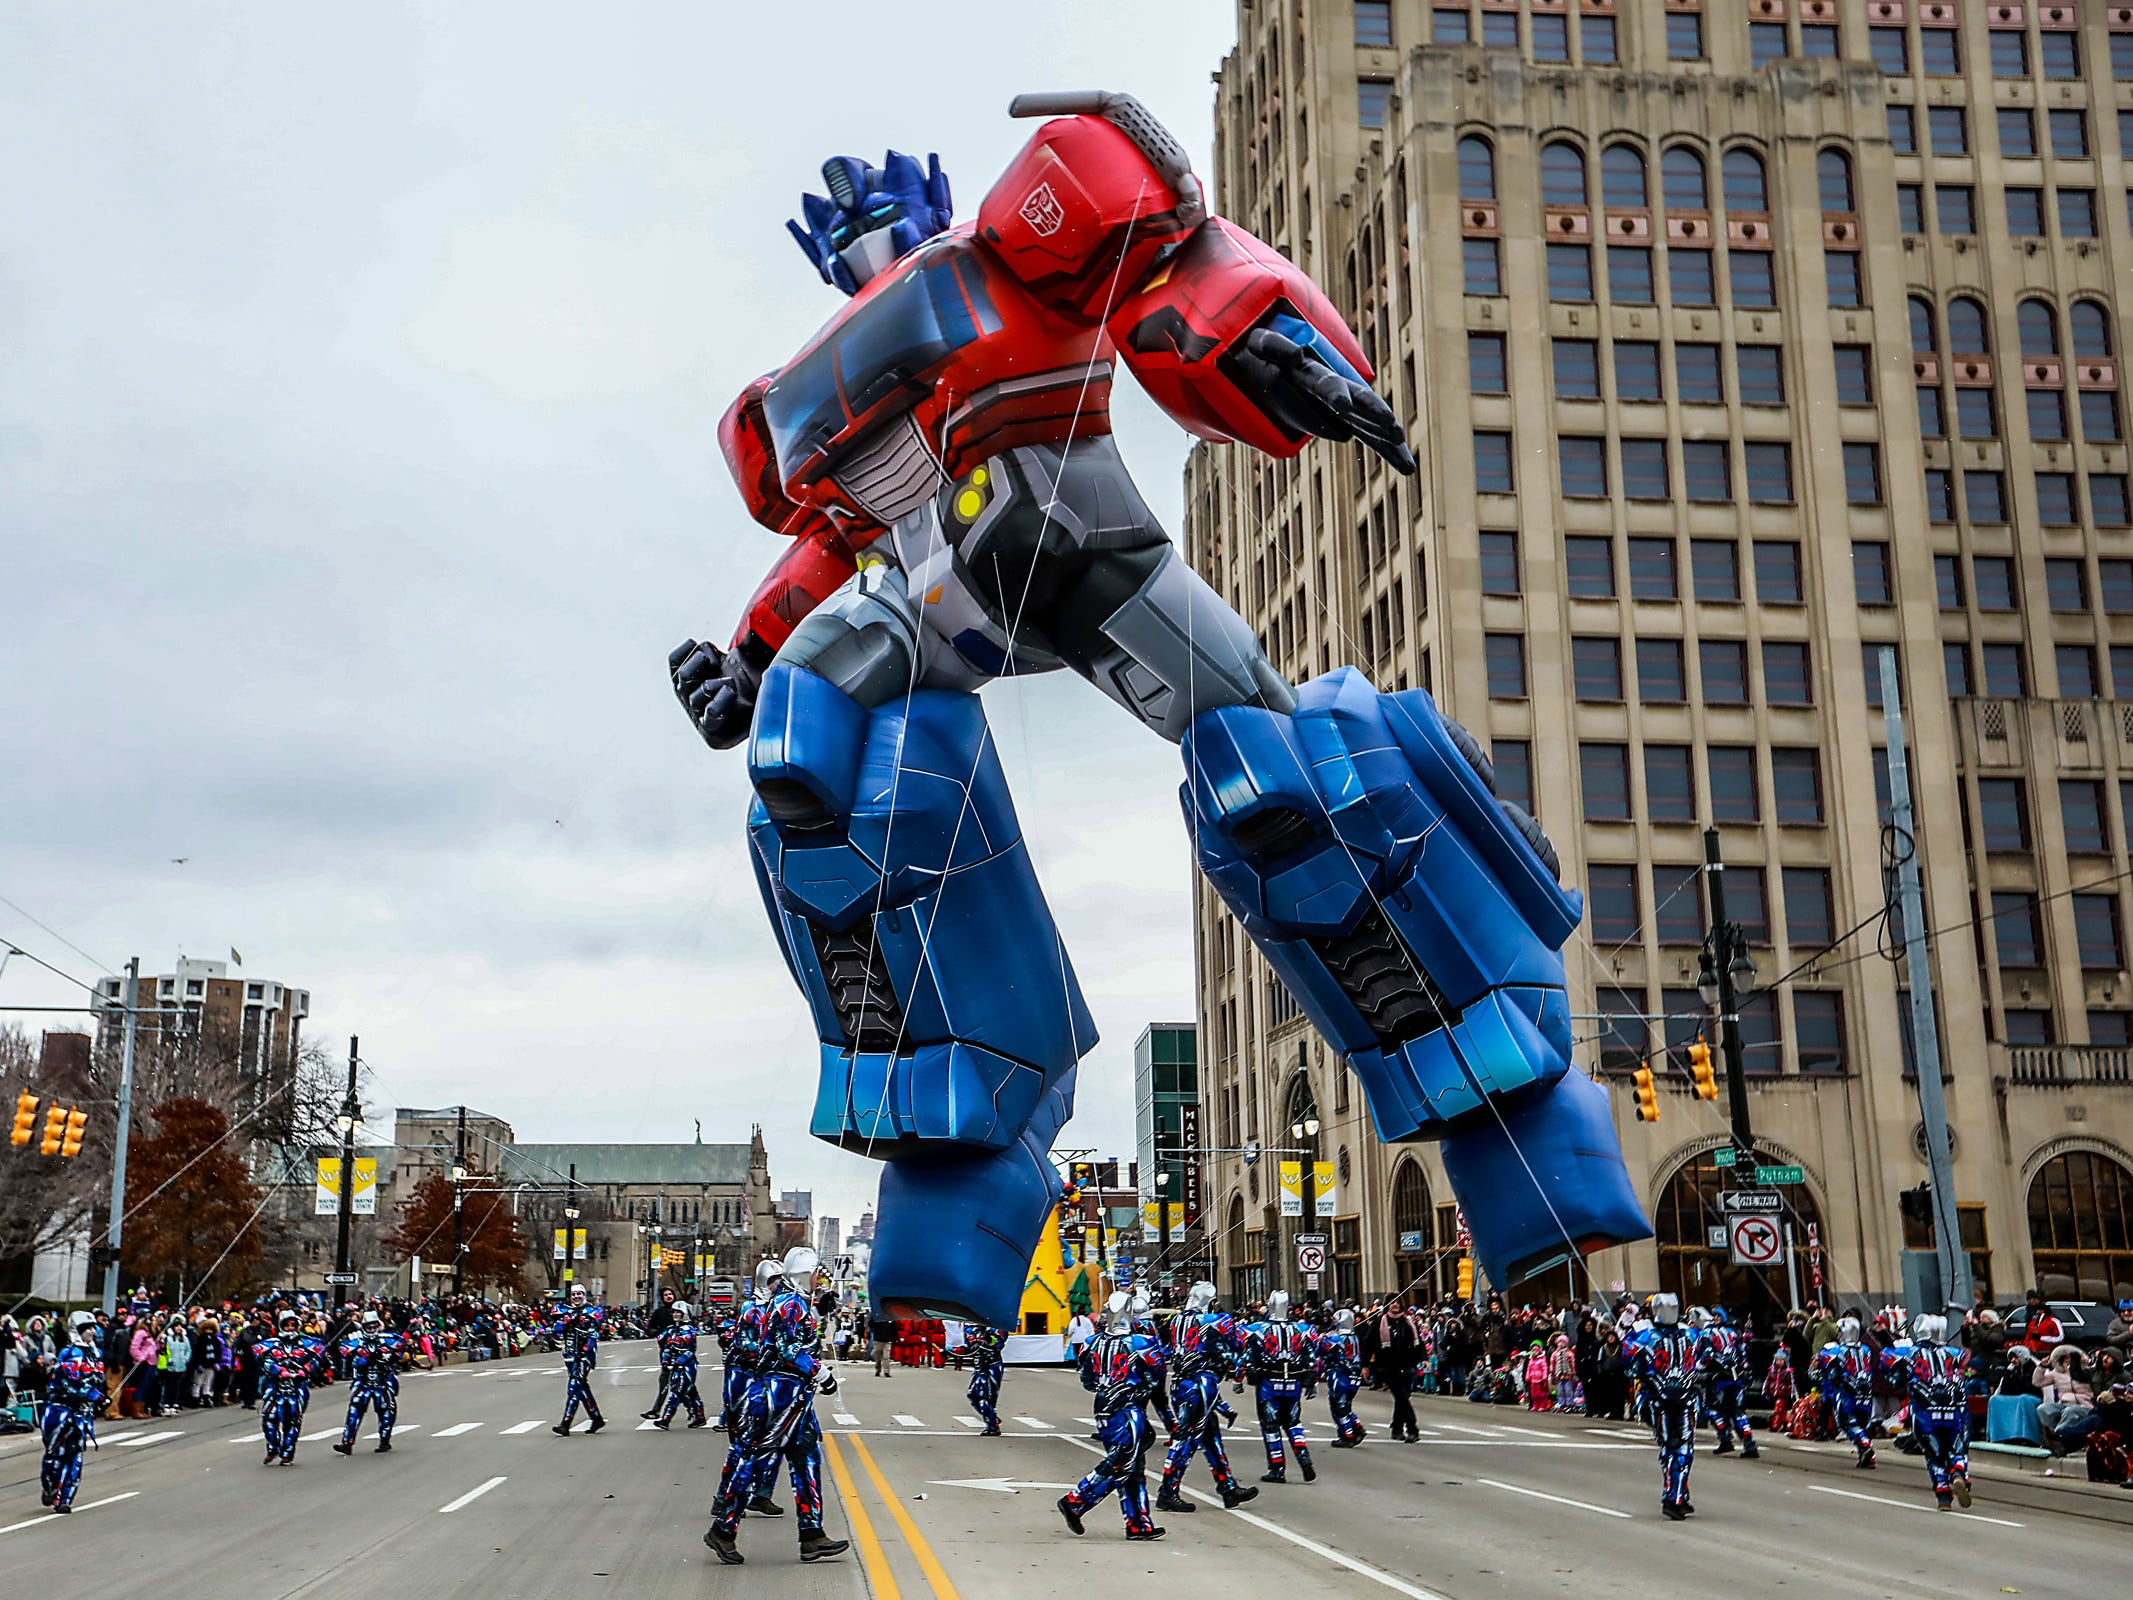 The Optimus Prime Transformer float is turned in a circle to the delight of the crowds, during America's Thanksgiving Parade in Detroit on Thursday, Nov. 22, 2018.